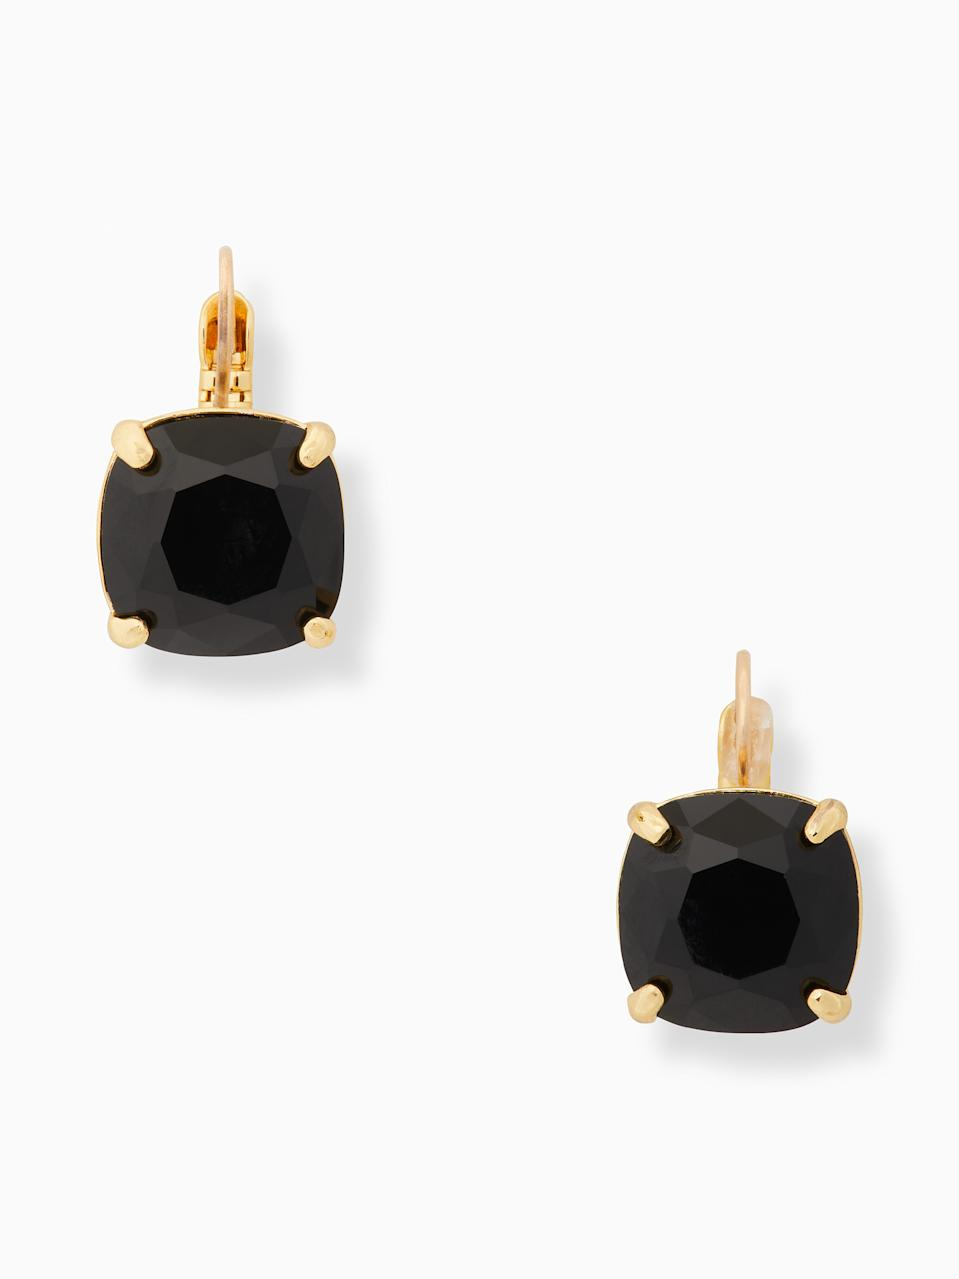 Small Square Leverback Earrings - Kate Spade- $21 (originally $48)